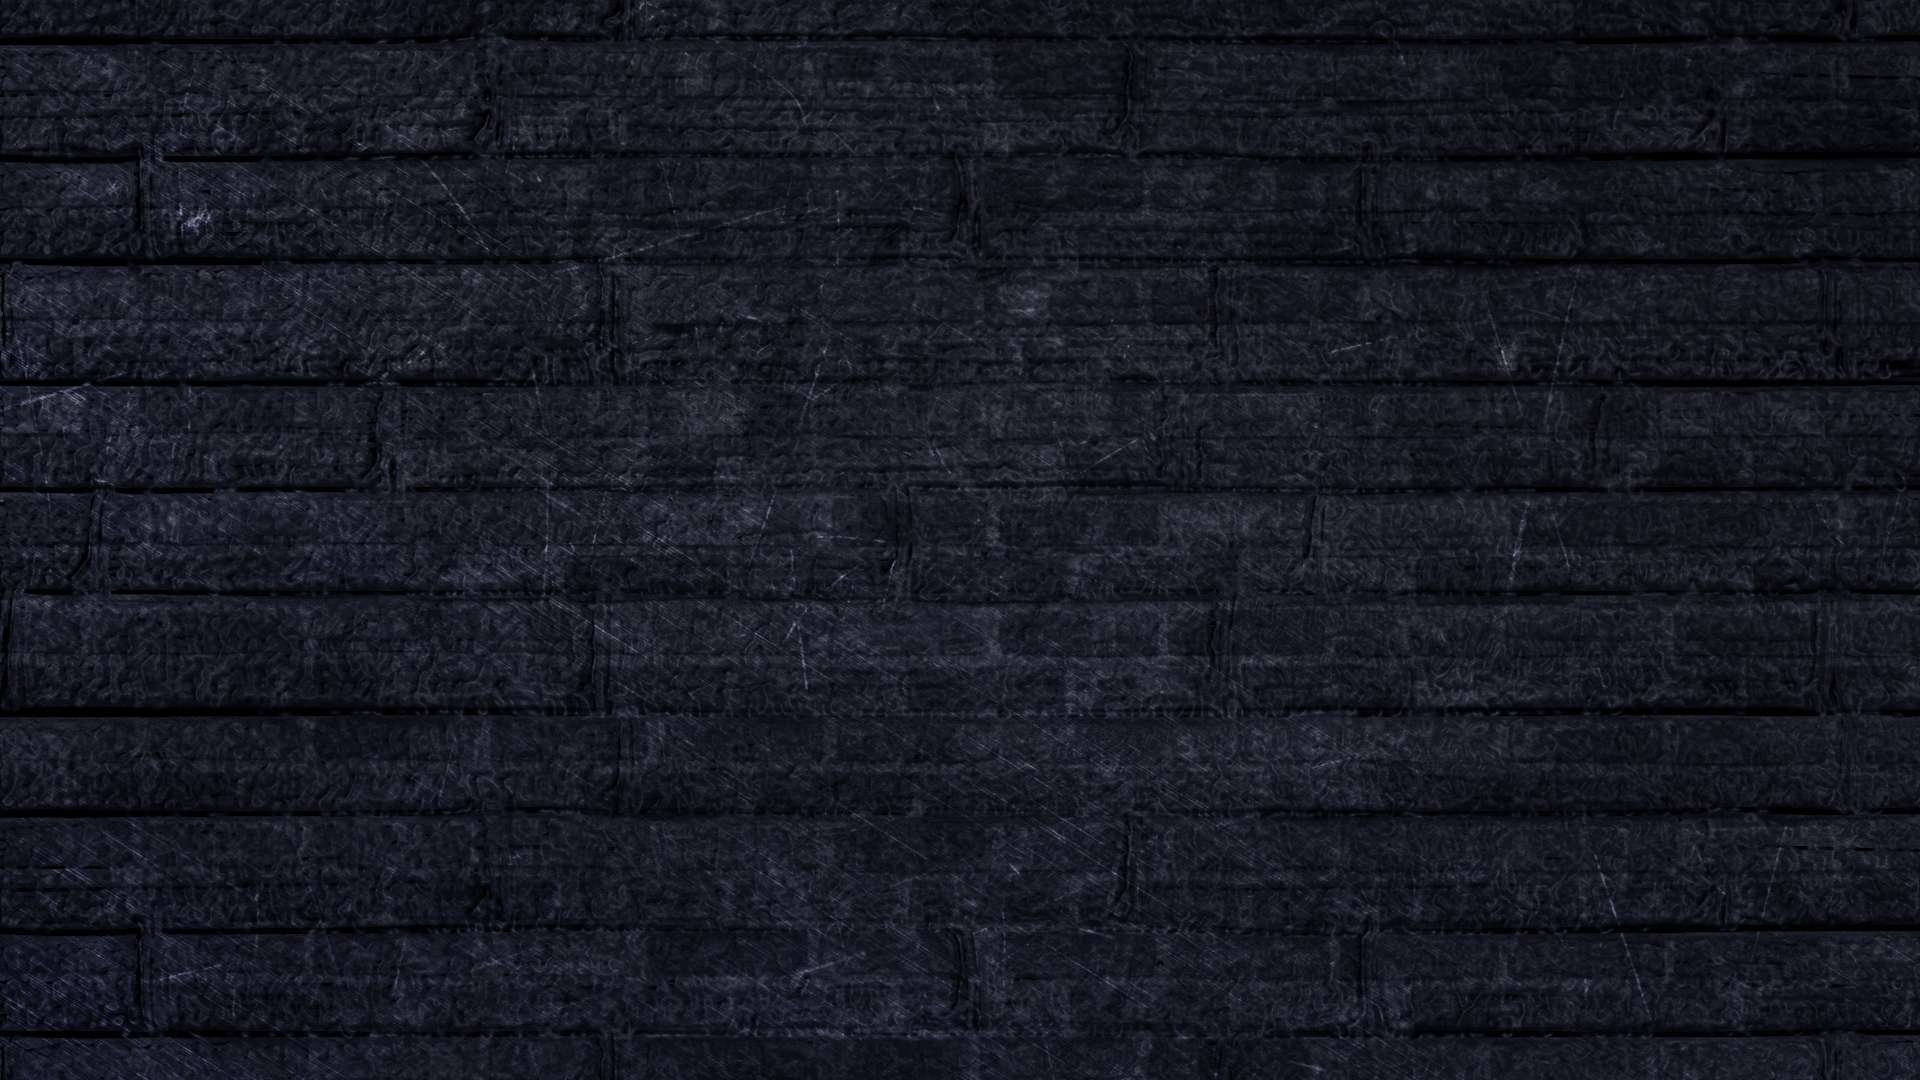 Texture Stripes Black Background Hd Wallpaper 1080p